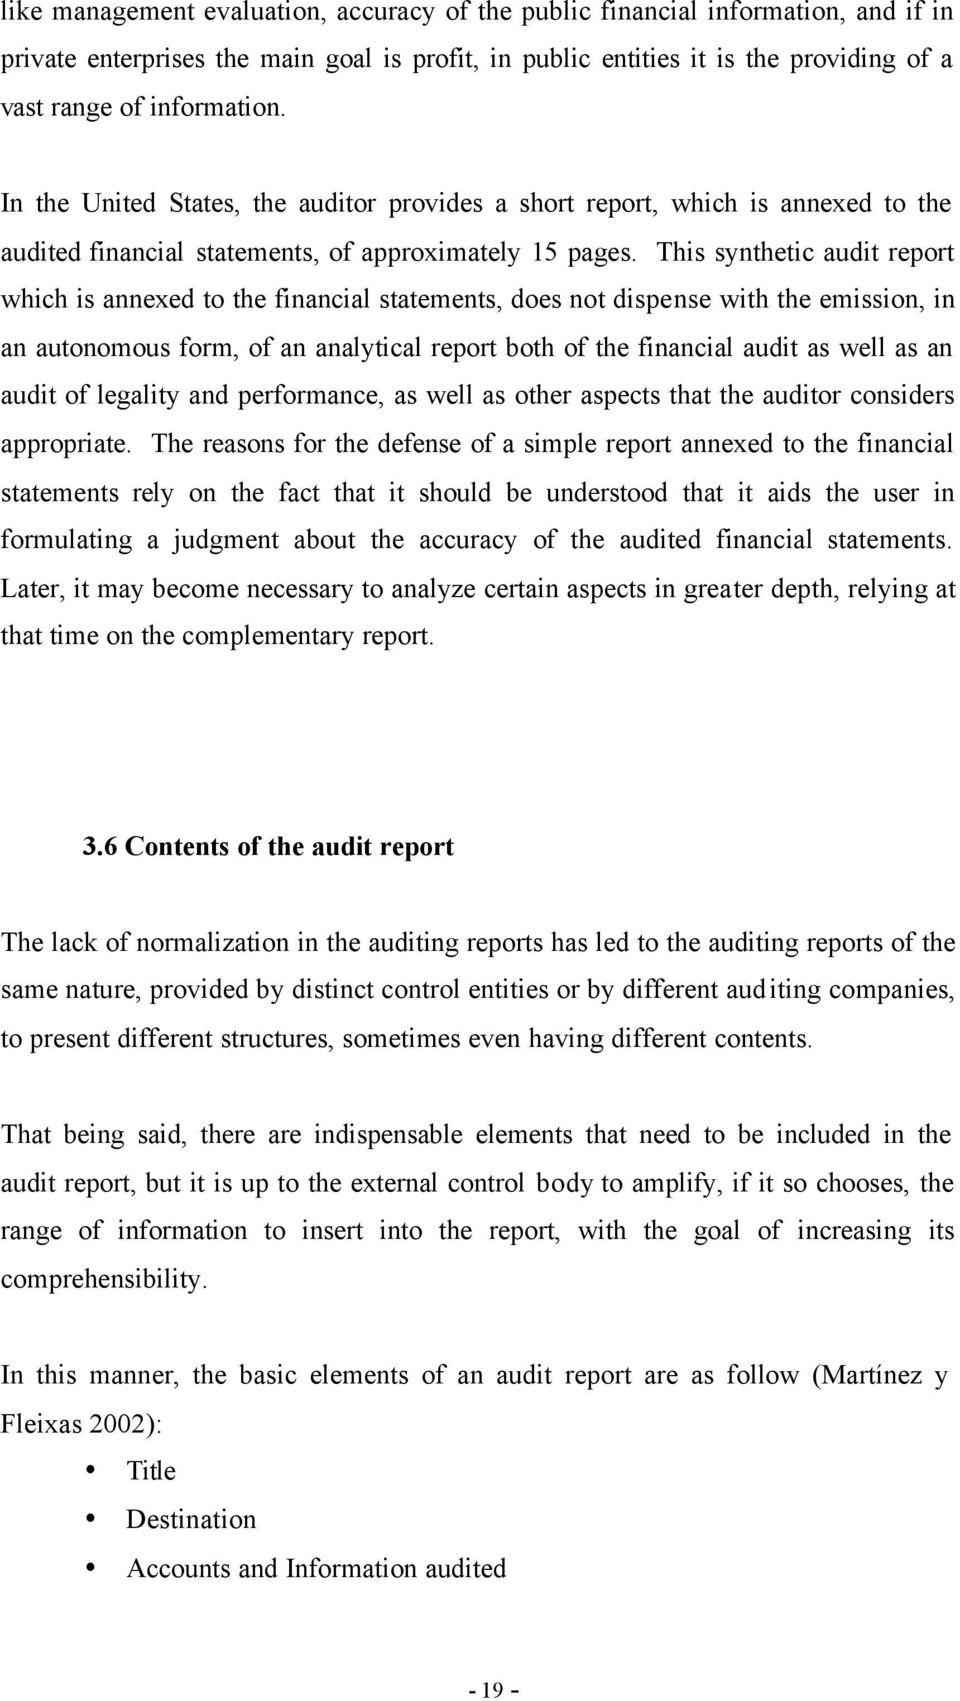 This synthetic audit report which is annexed to the financial statements, does not dispense with the emission, in an autonomous form, of an analytical report both of the financial audit as well as an